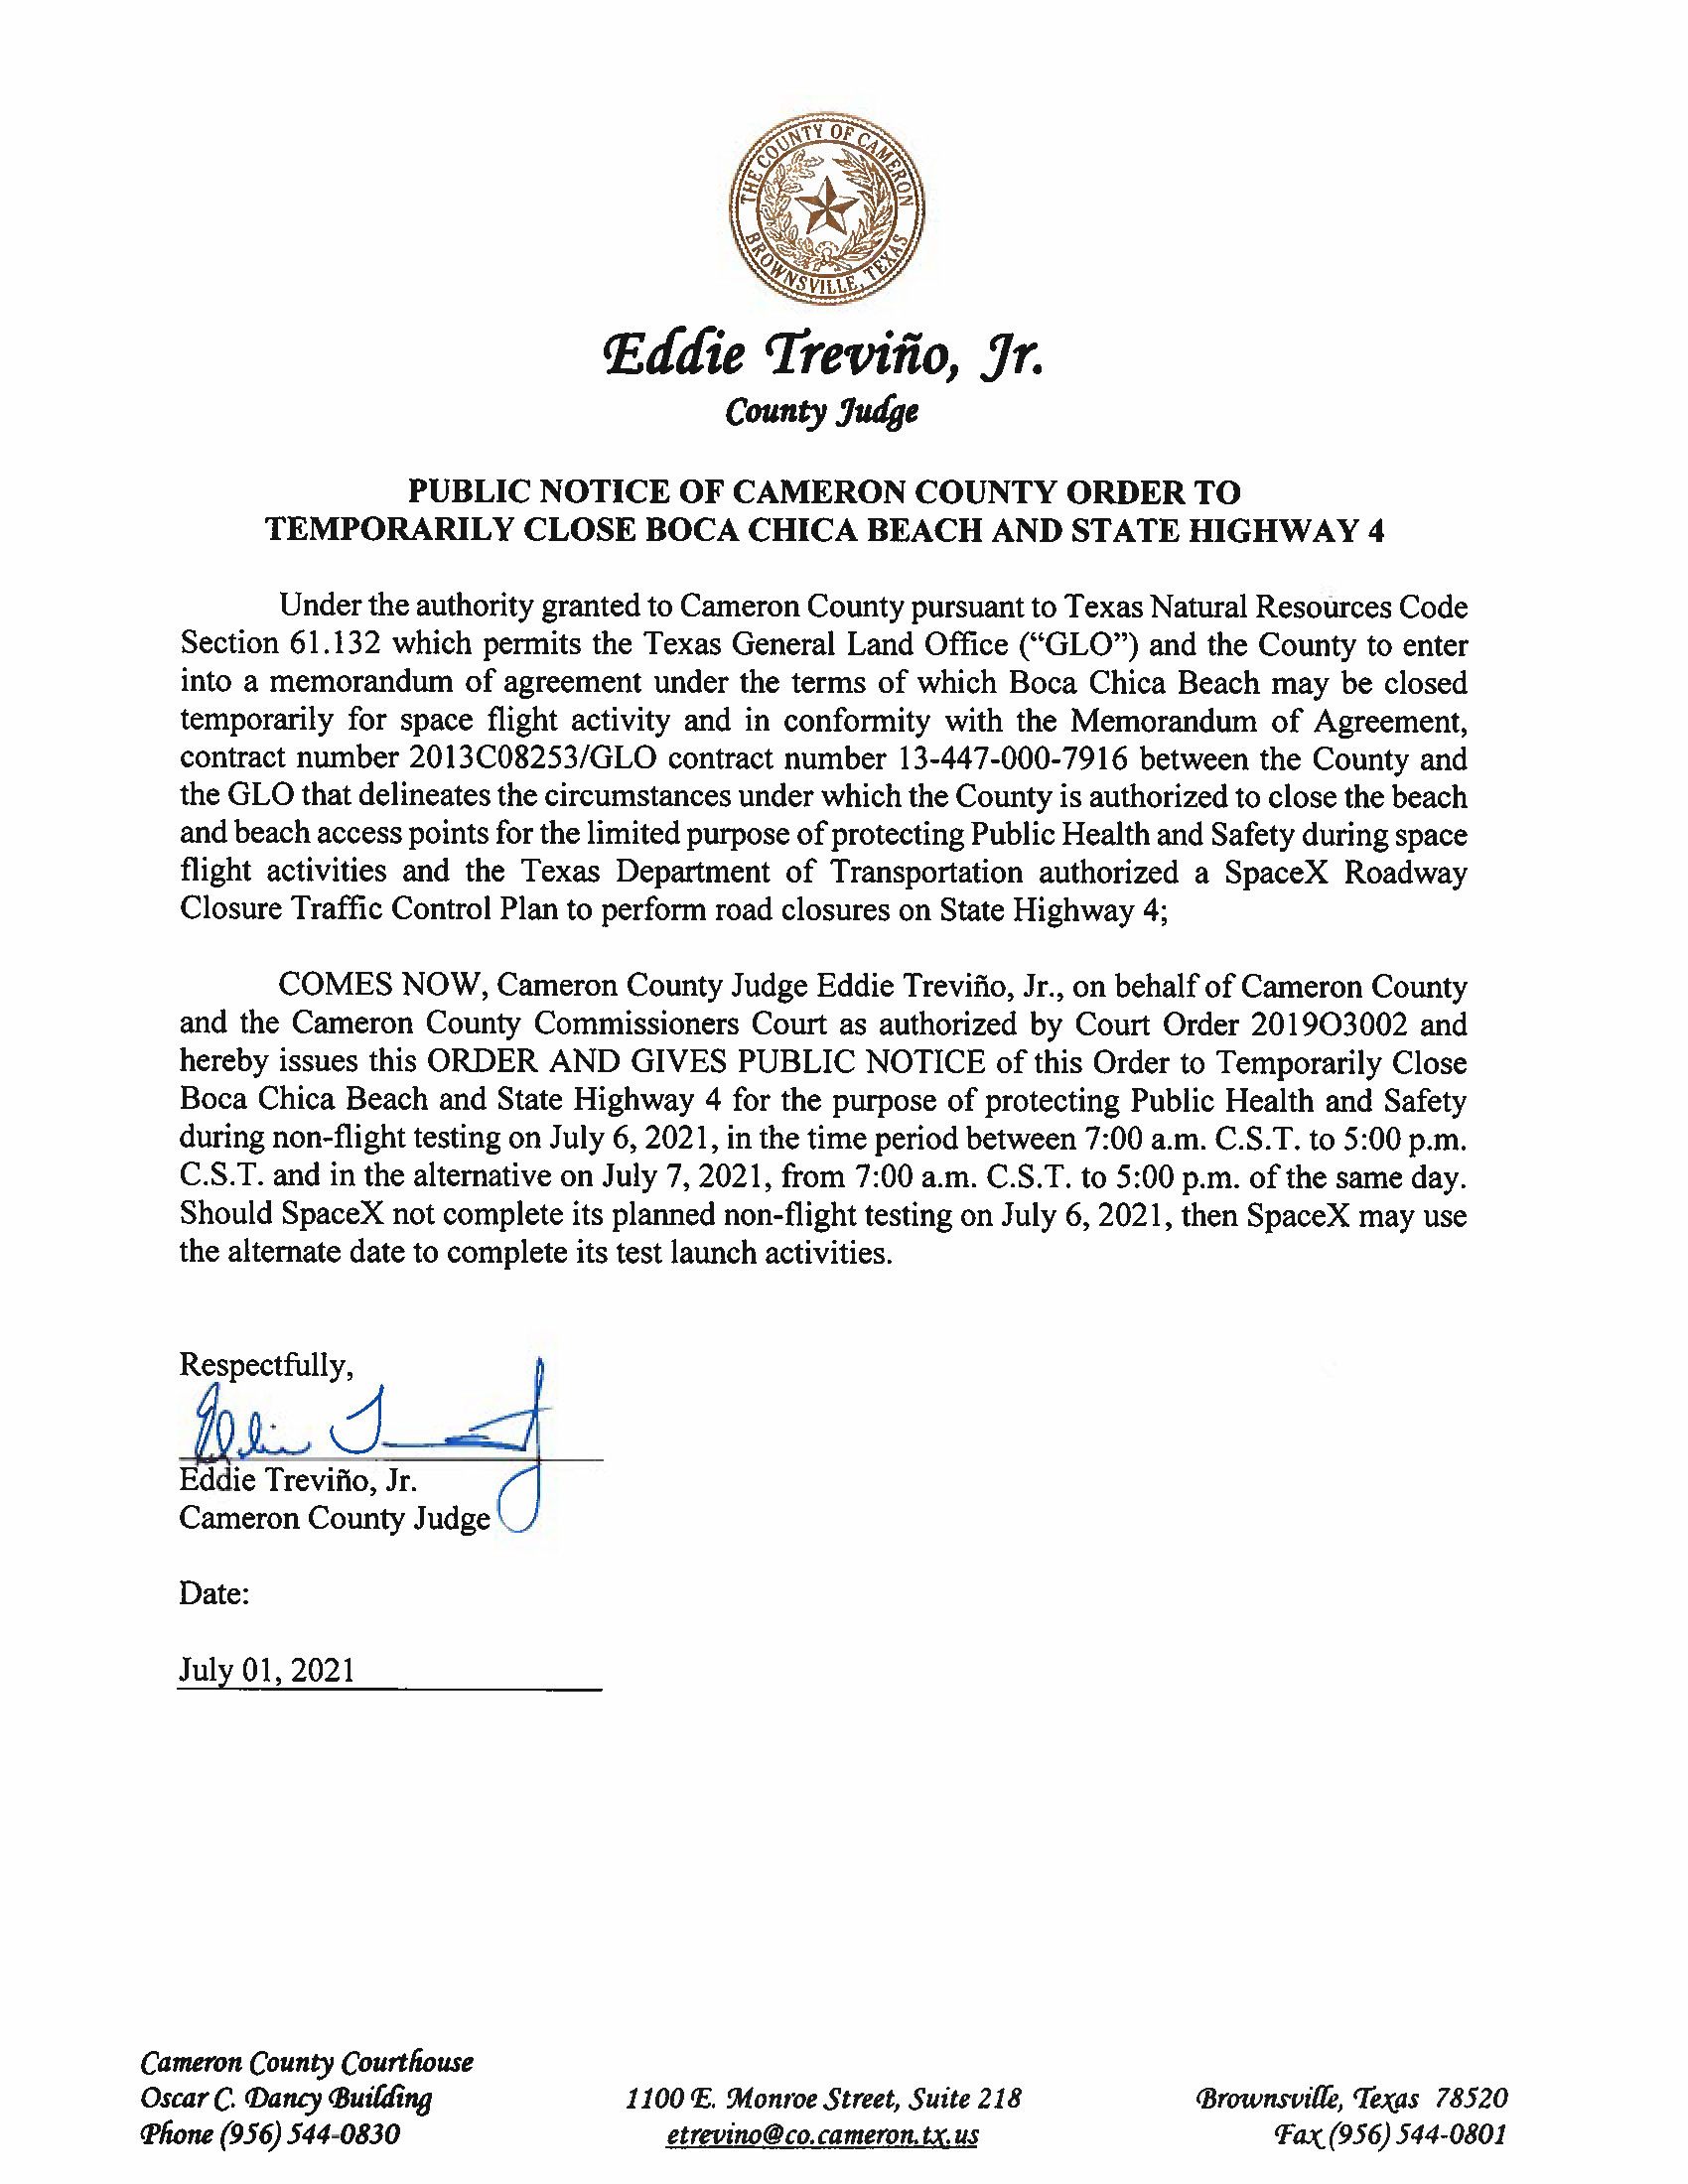 PUBLIC NOTICE OF CAMERON COUNTY ORDER TO TEMP. BEACH CLOSURE AND HWY.07.06.2021